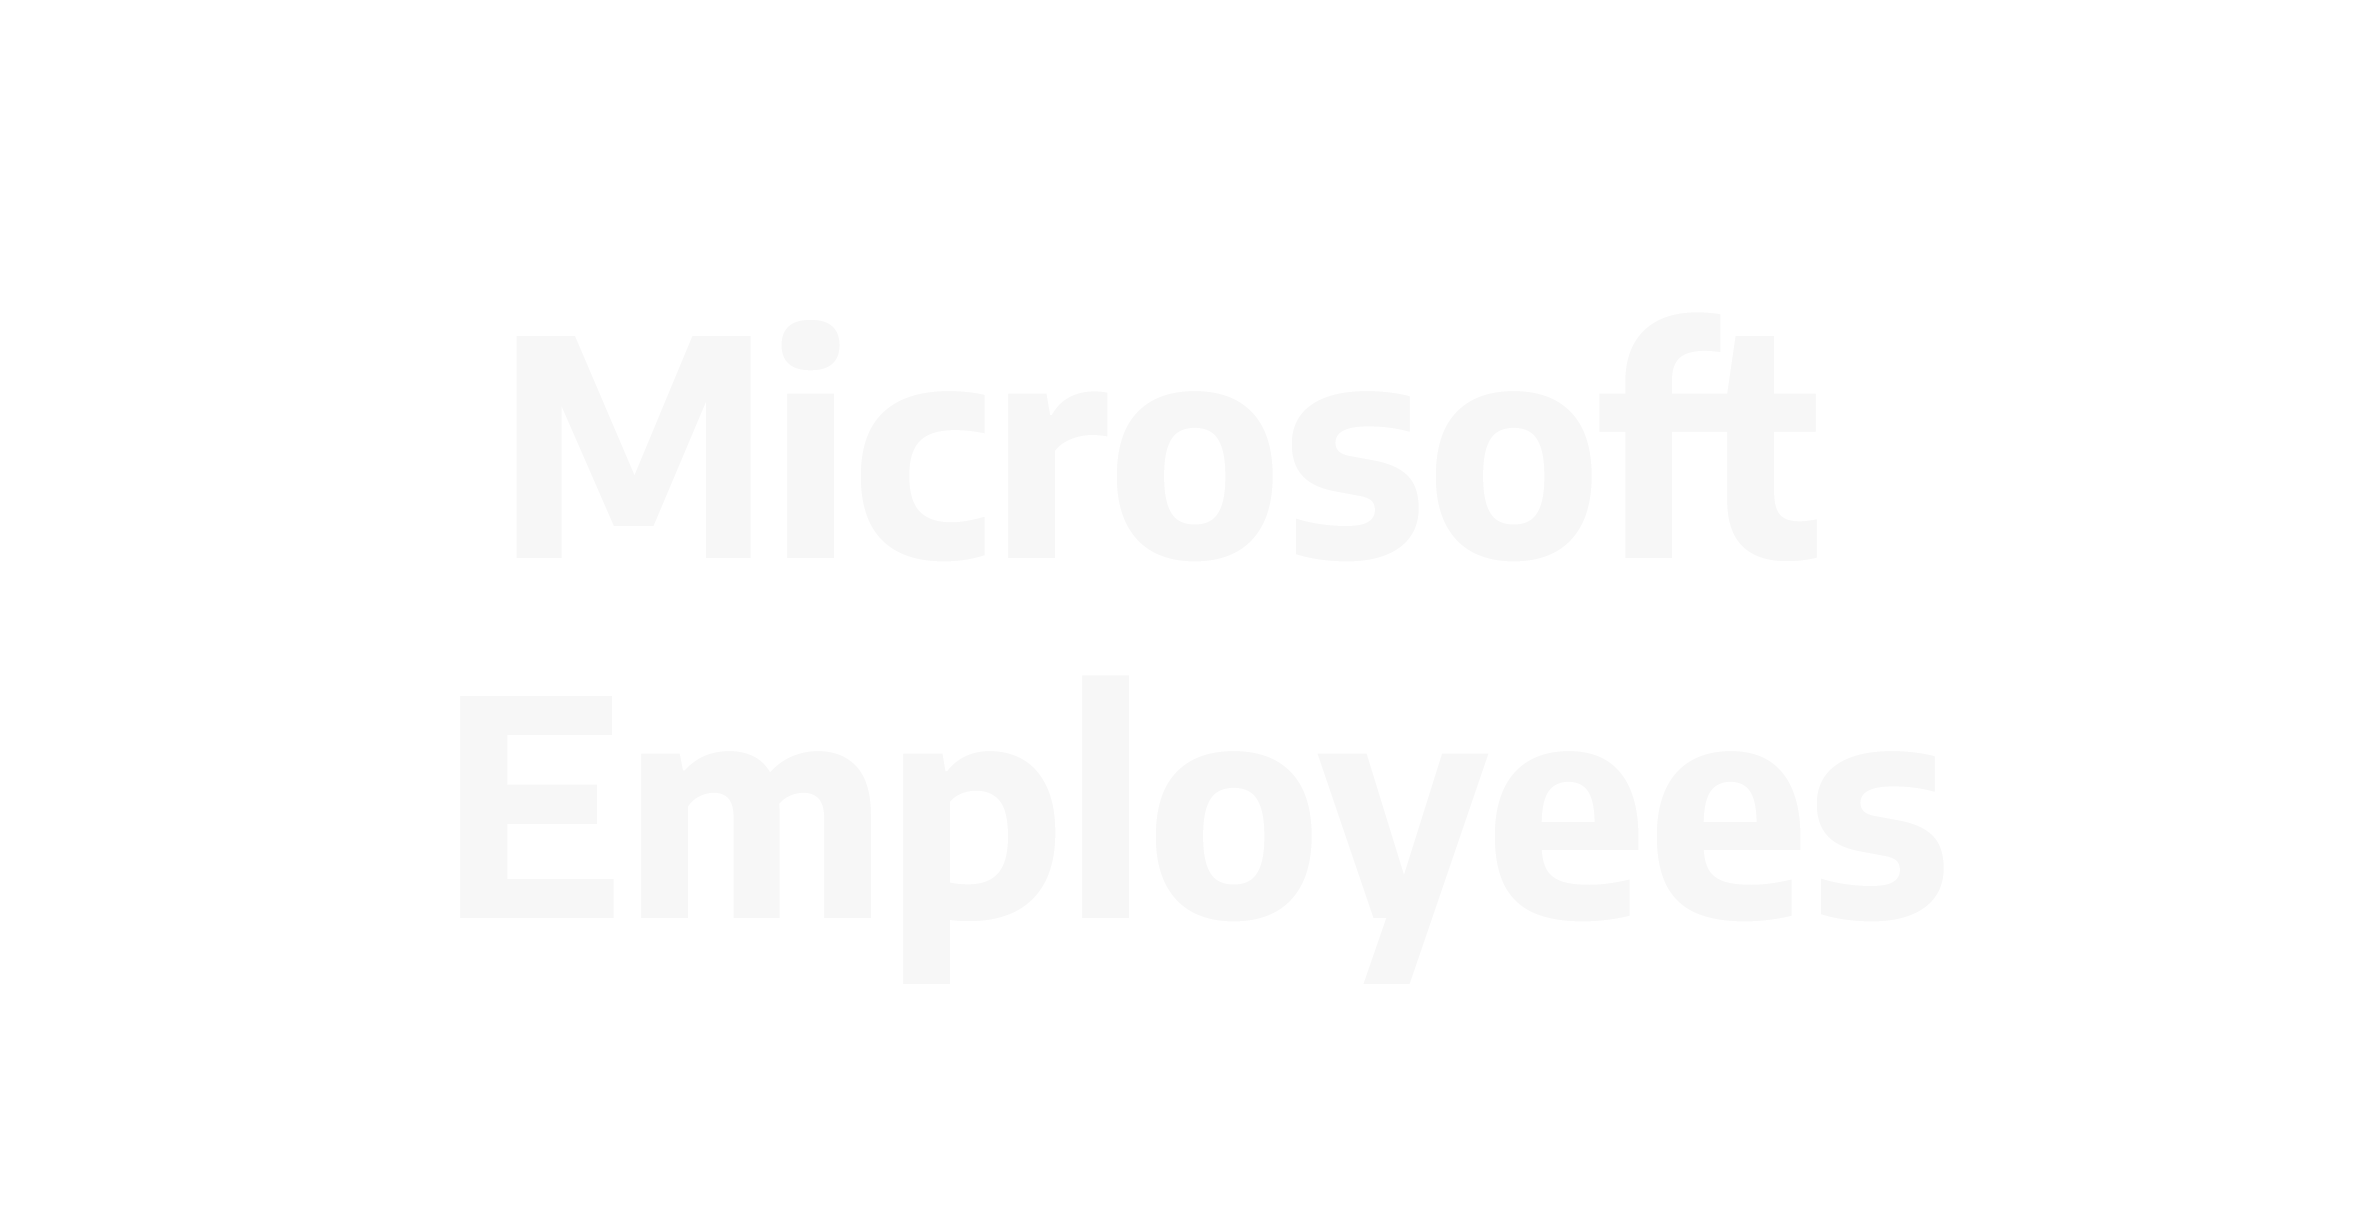 Microsoft emplyees-12.png